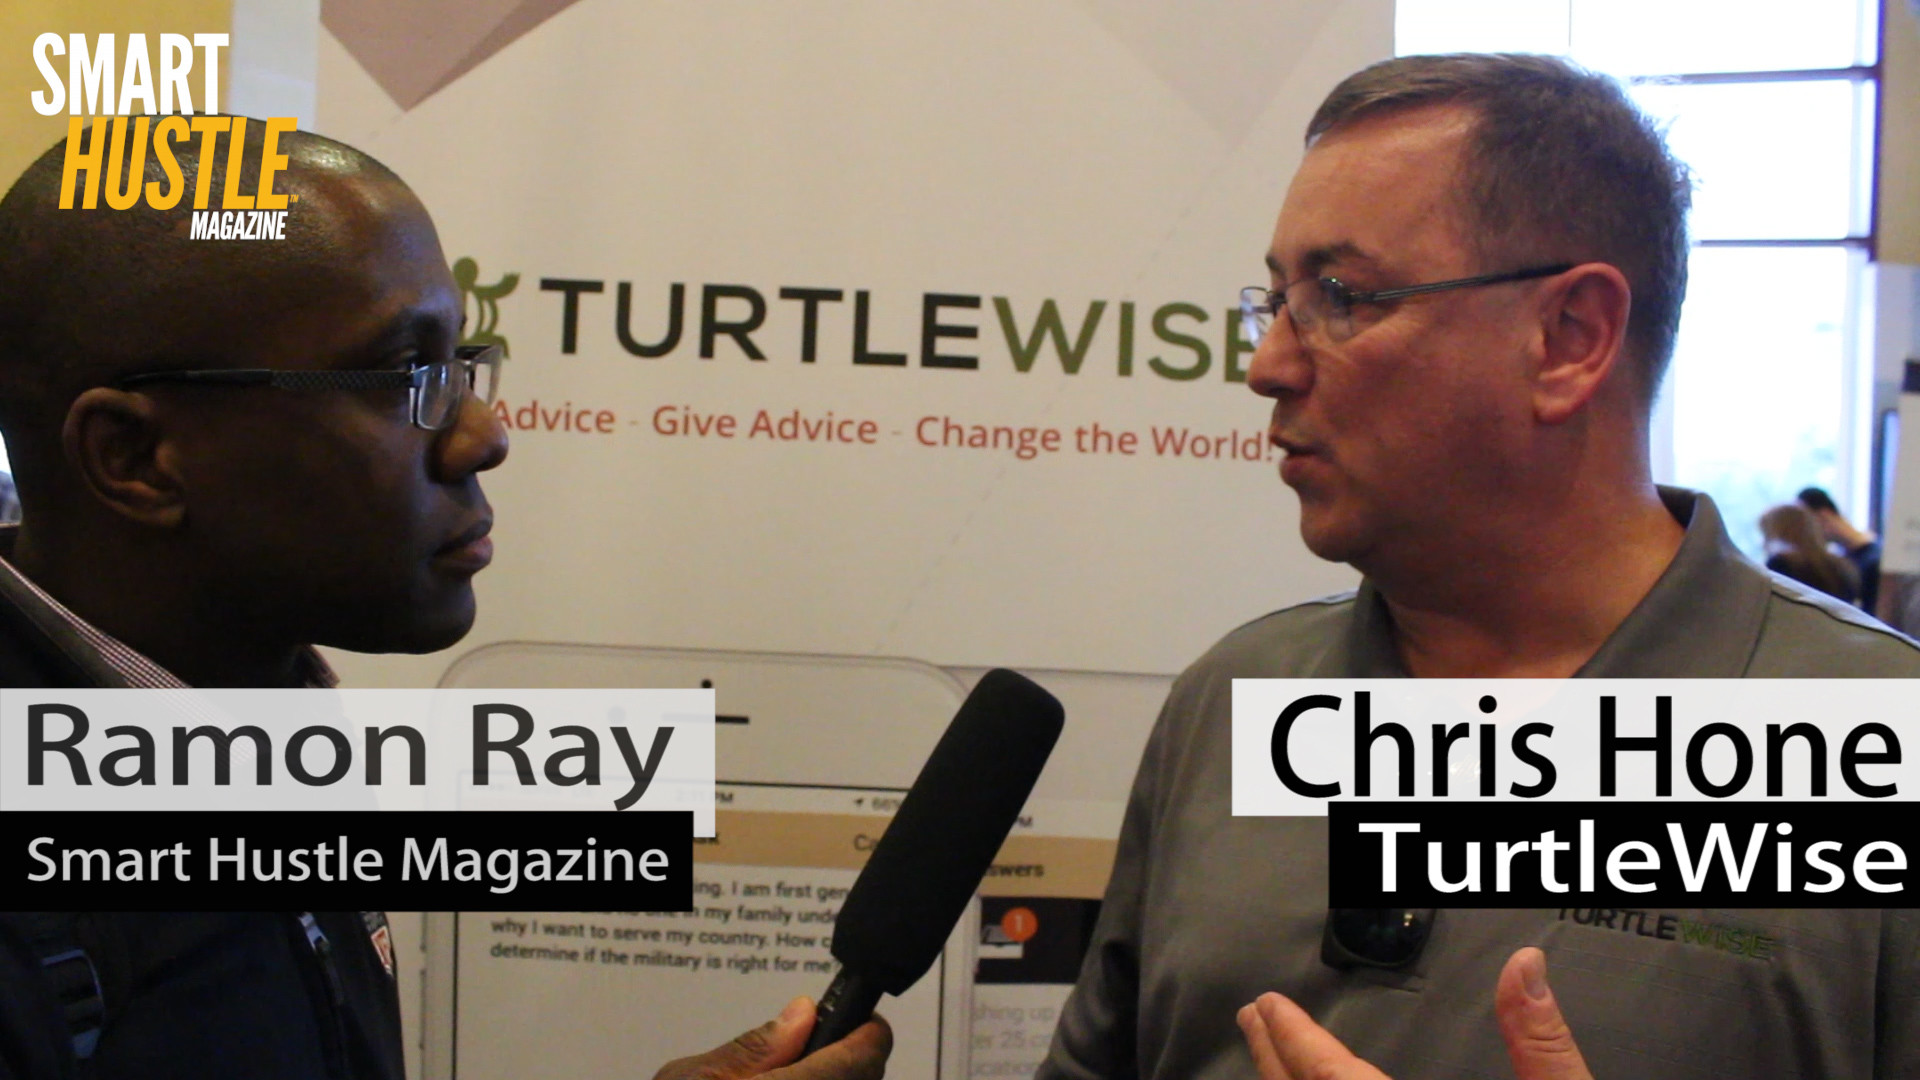 TurtleWise: Helping to Get Business Advice From Different Demographics